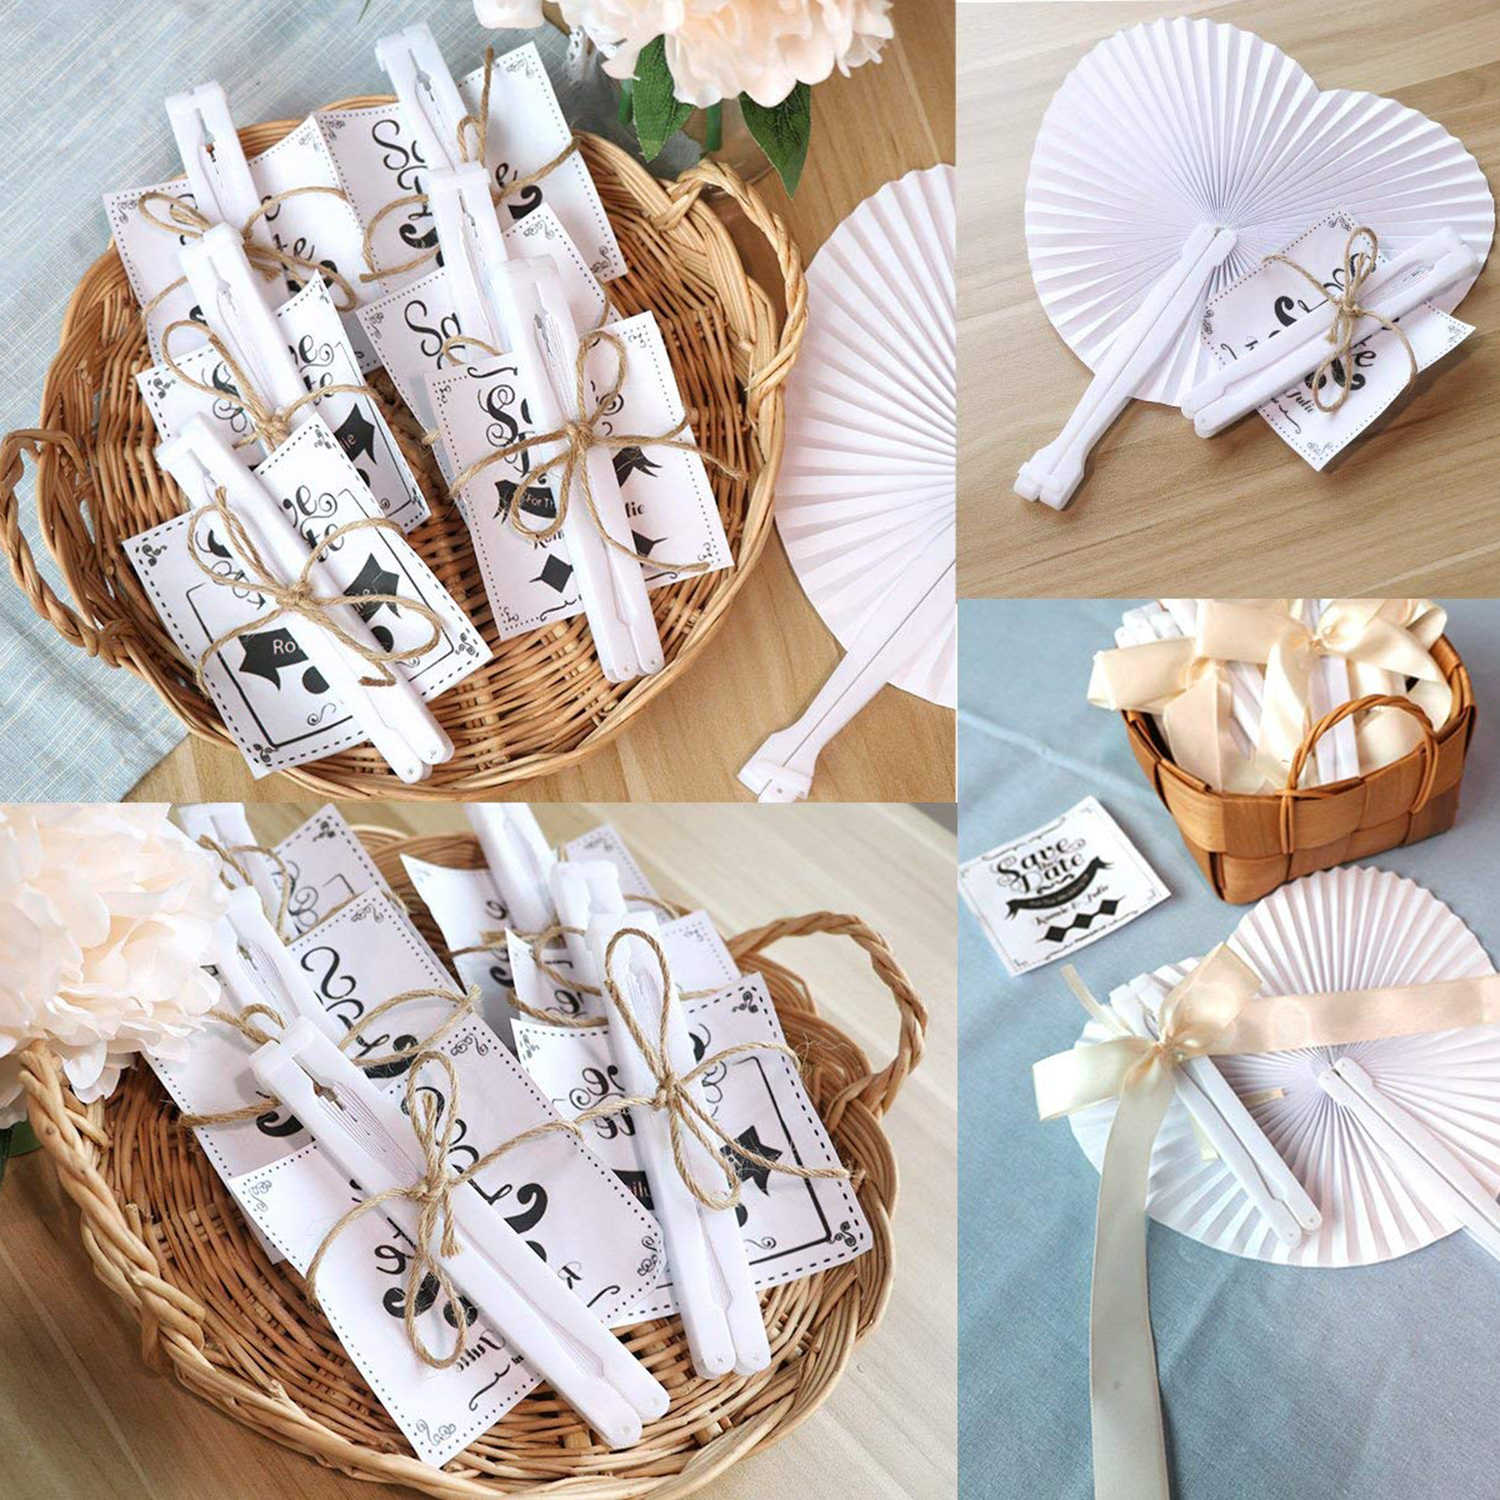 24 PCS Romantic Heart Shape Wedding Anniversary Hand Held Folding Paper Fan Party Gifts Heart White Blank Paper Folding Fans